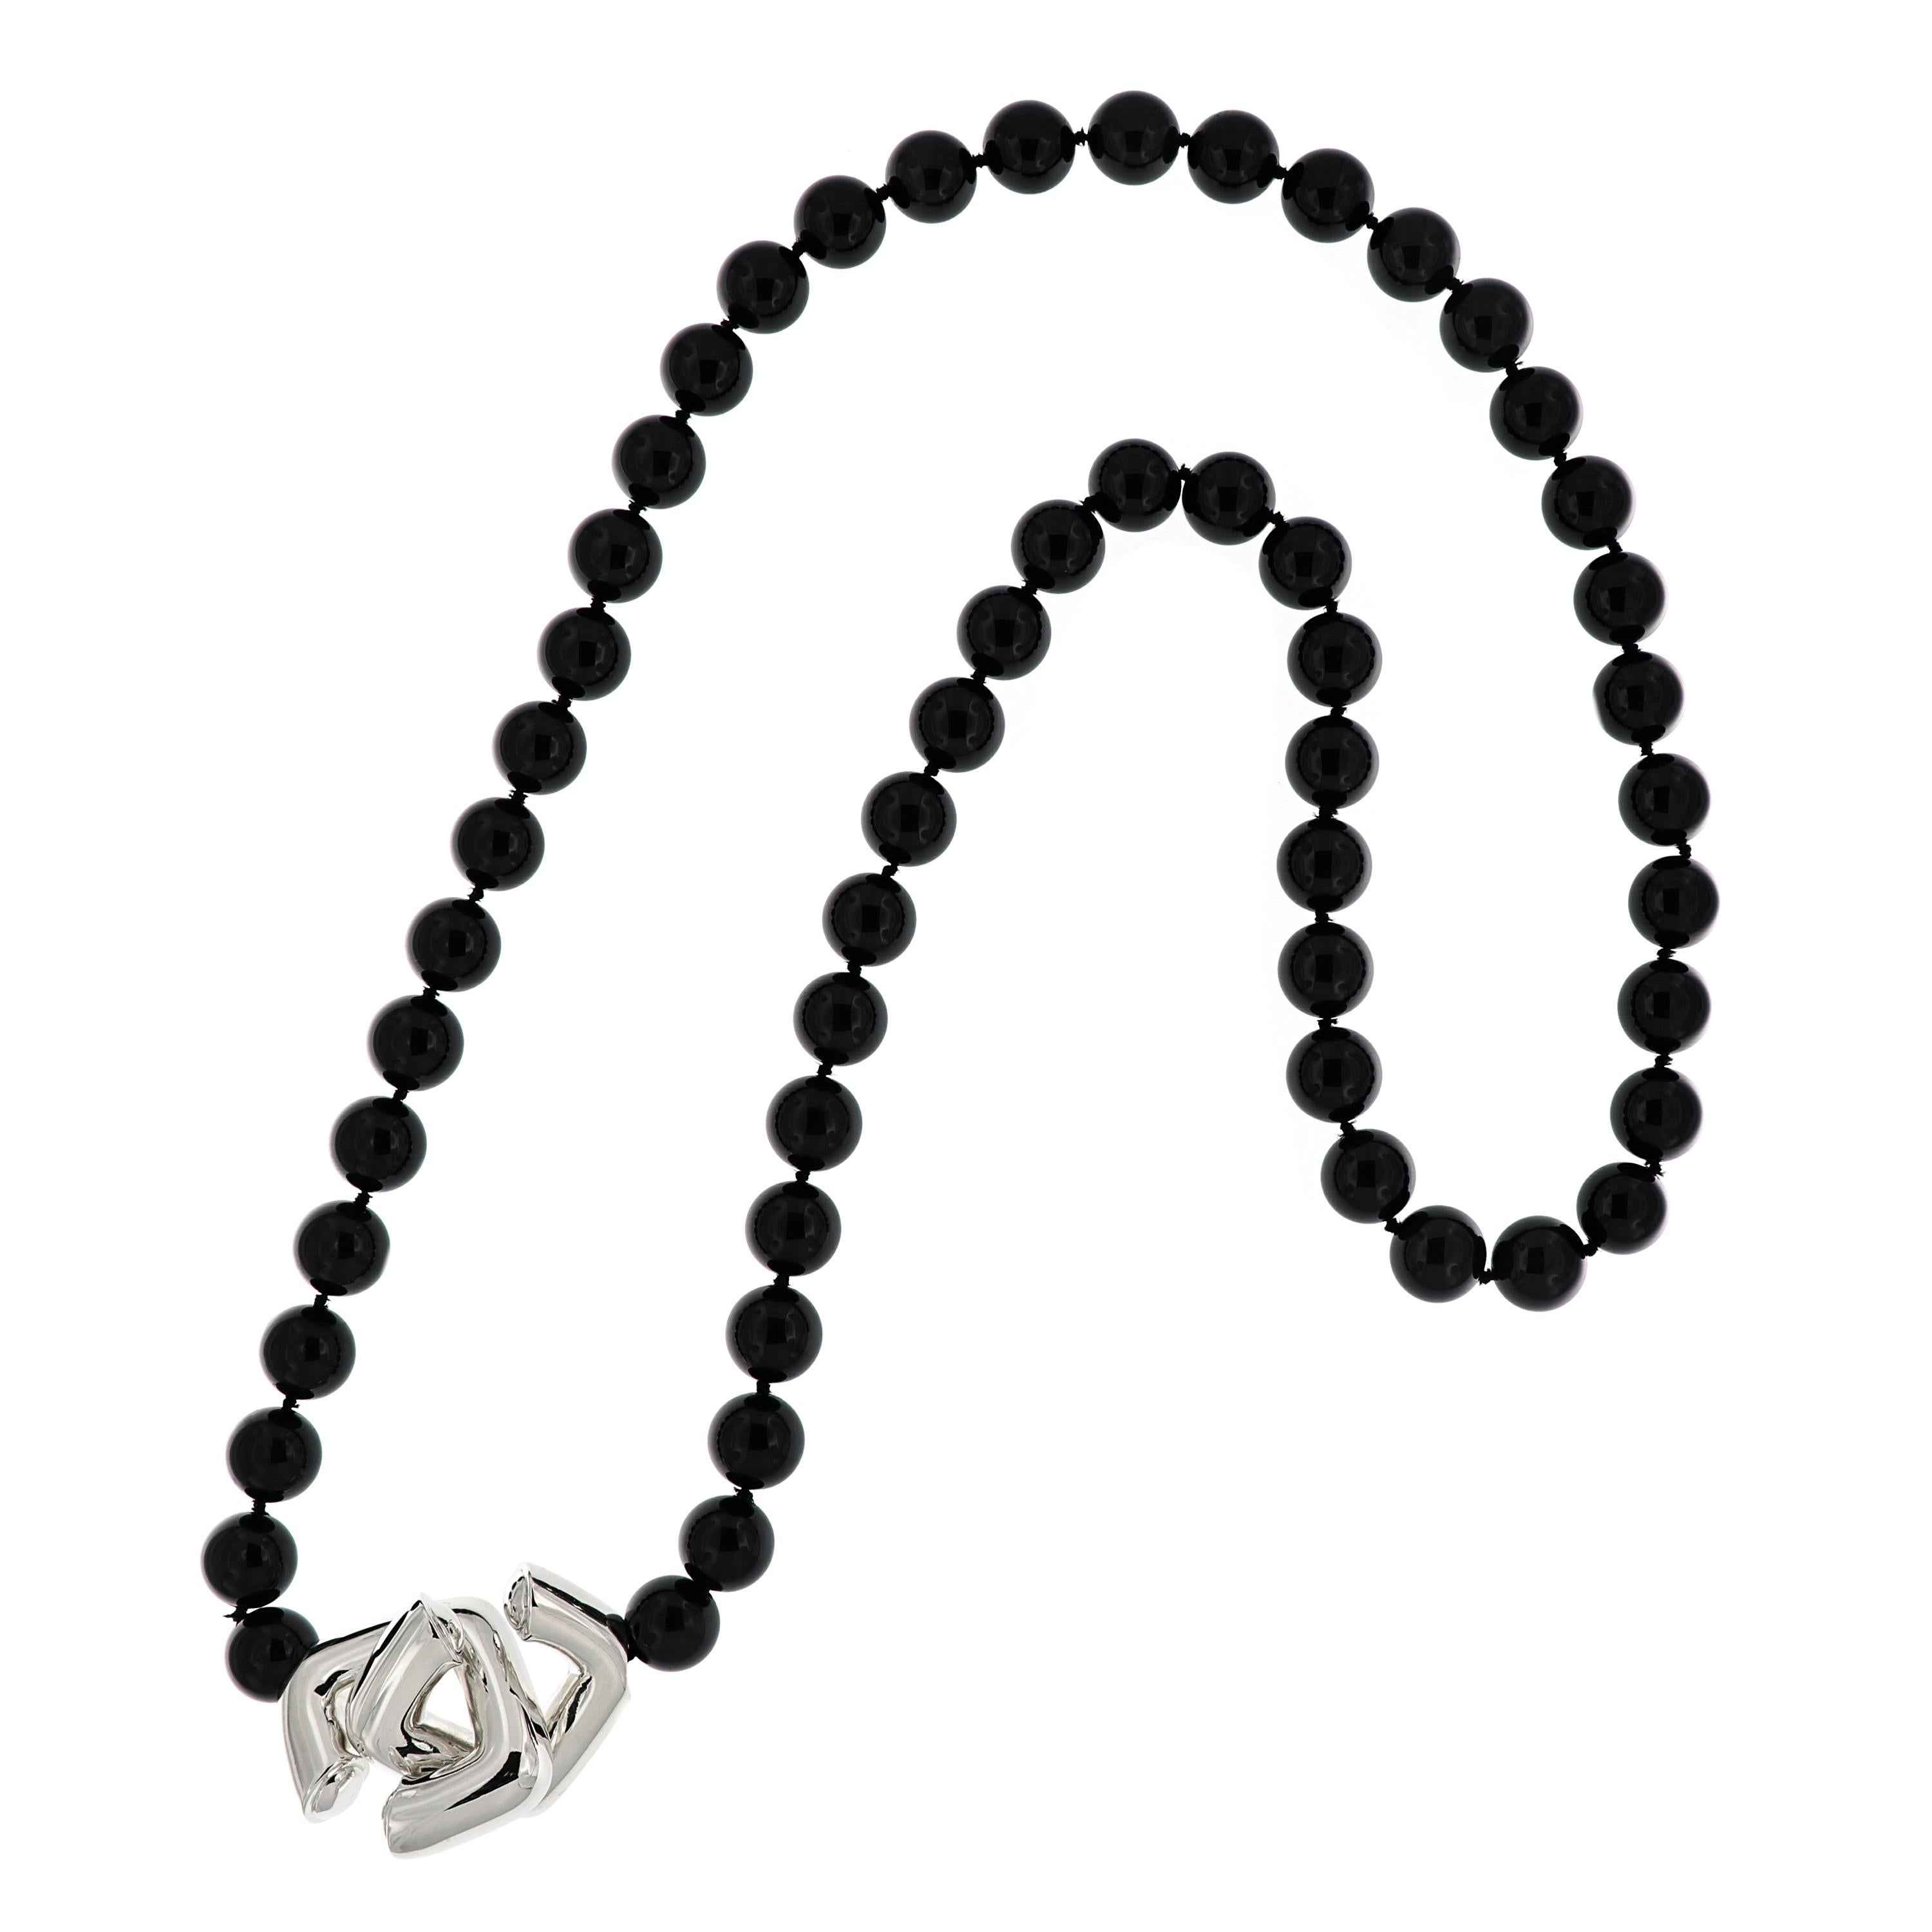 7ca96c3aa Tiffany and Co. Paloma Picasso Sterling Silver Onyx Bead Necklace at 1stdibs